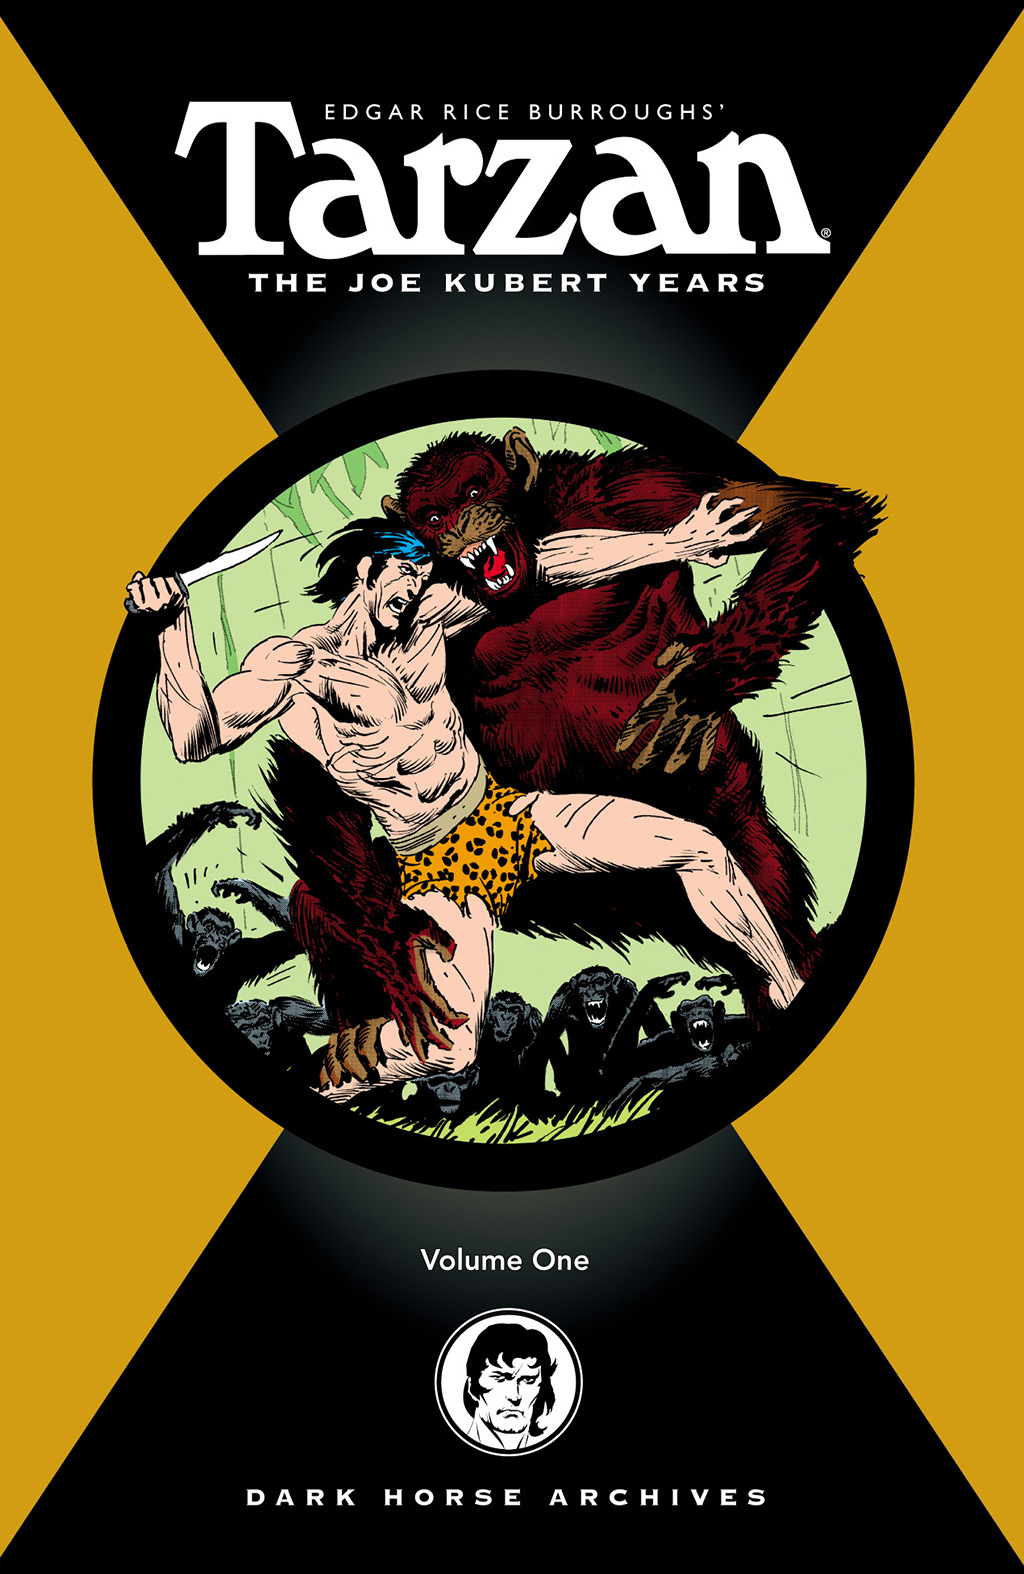 TARZAN ARCHIVES - The Joe Kubert Years (v1 - v3)